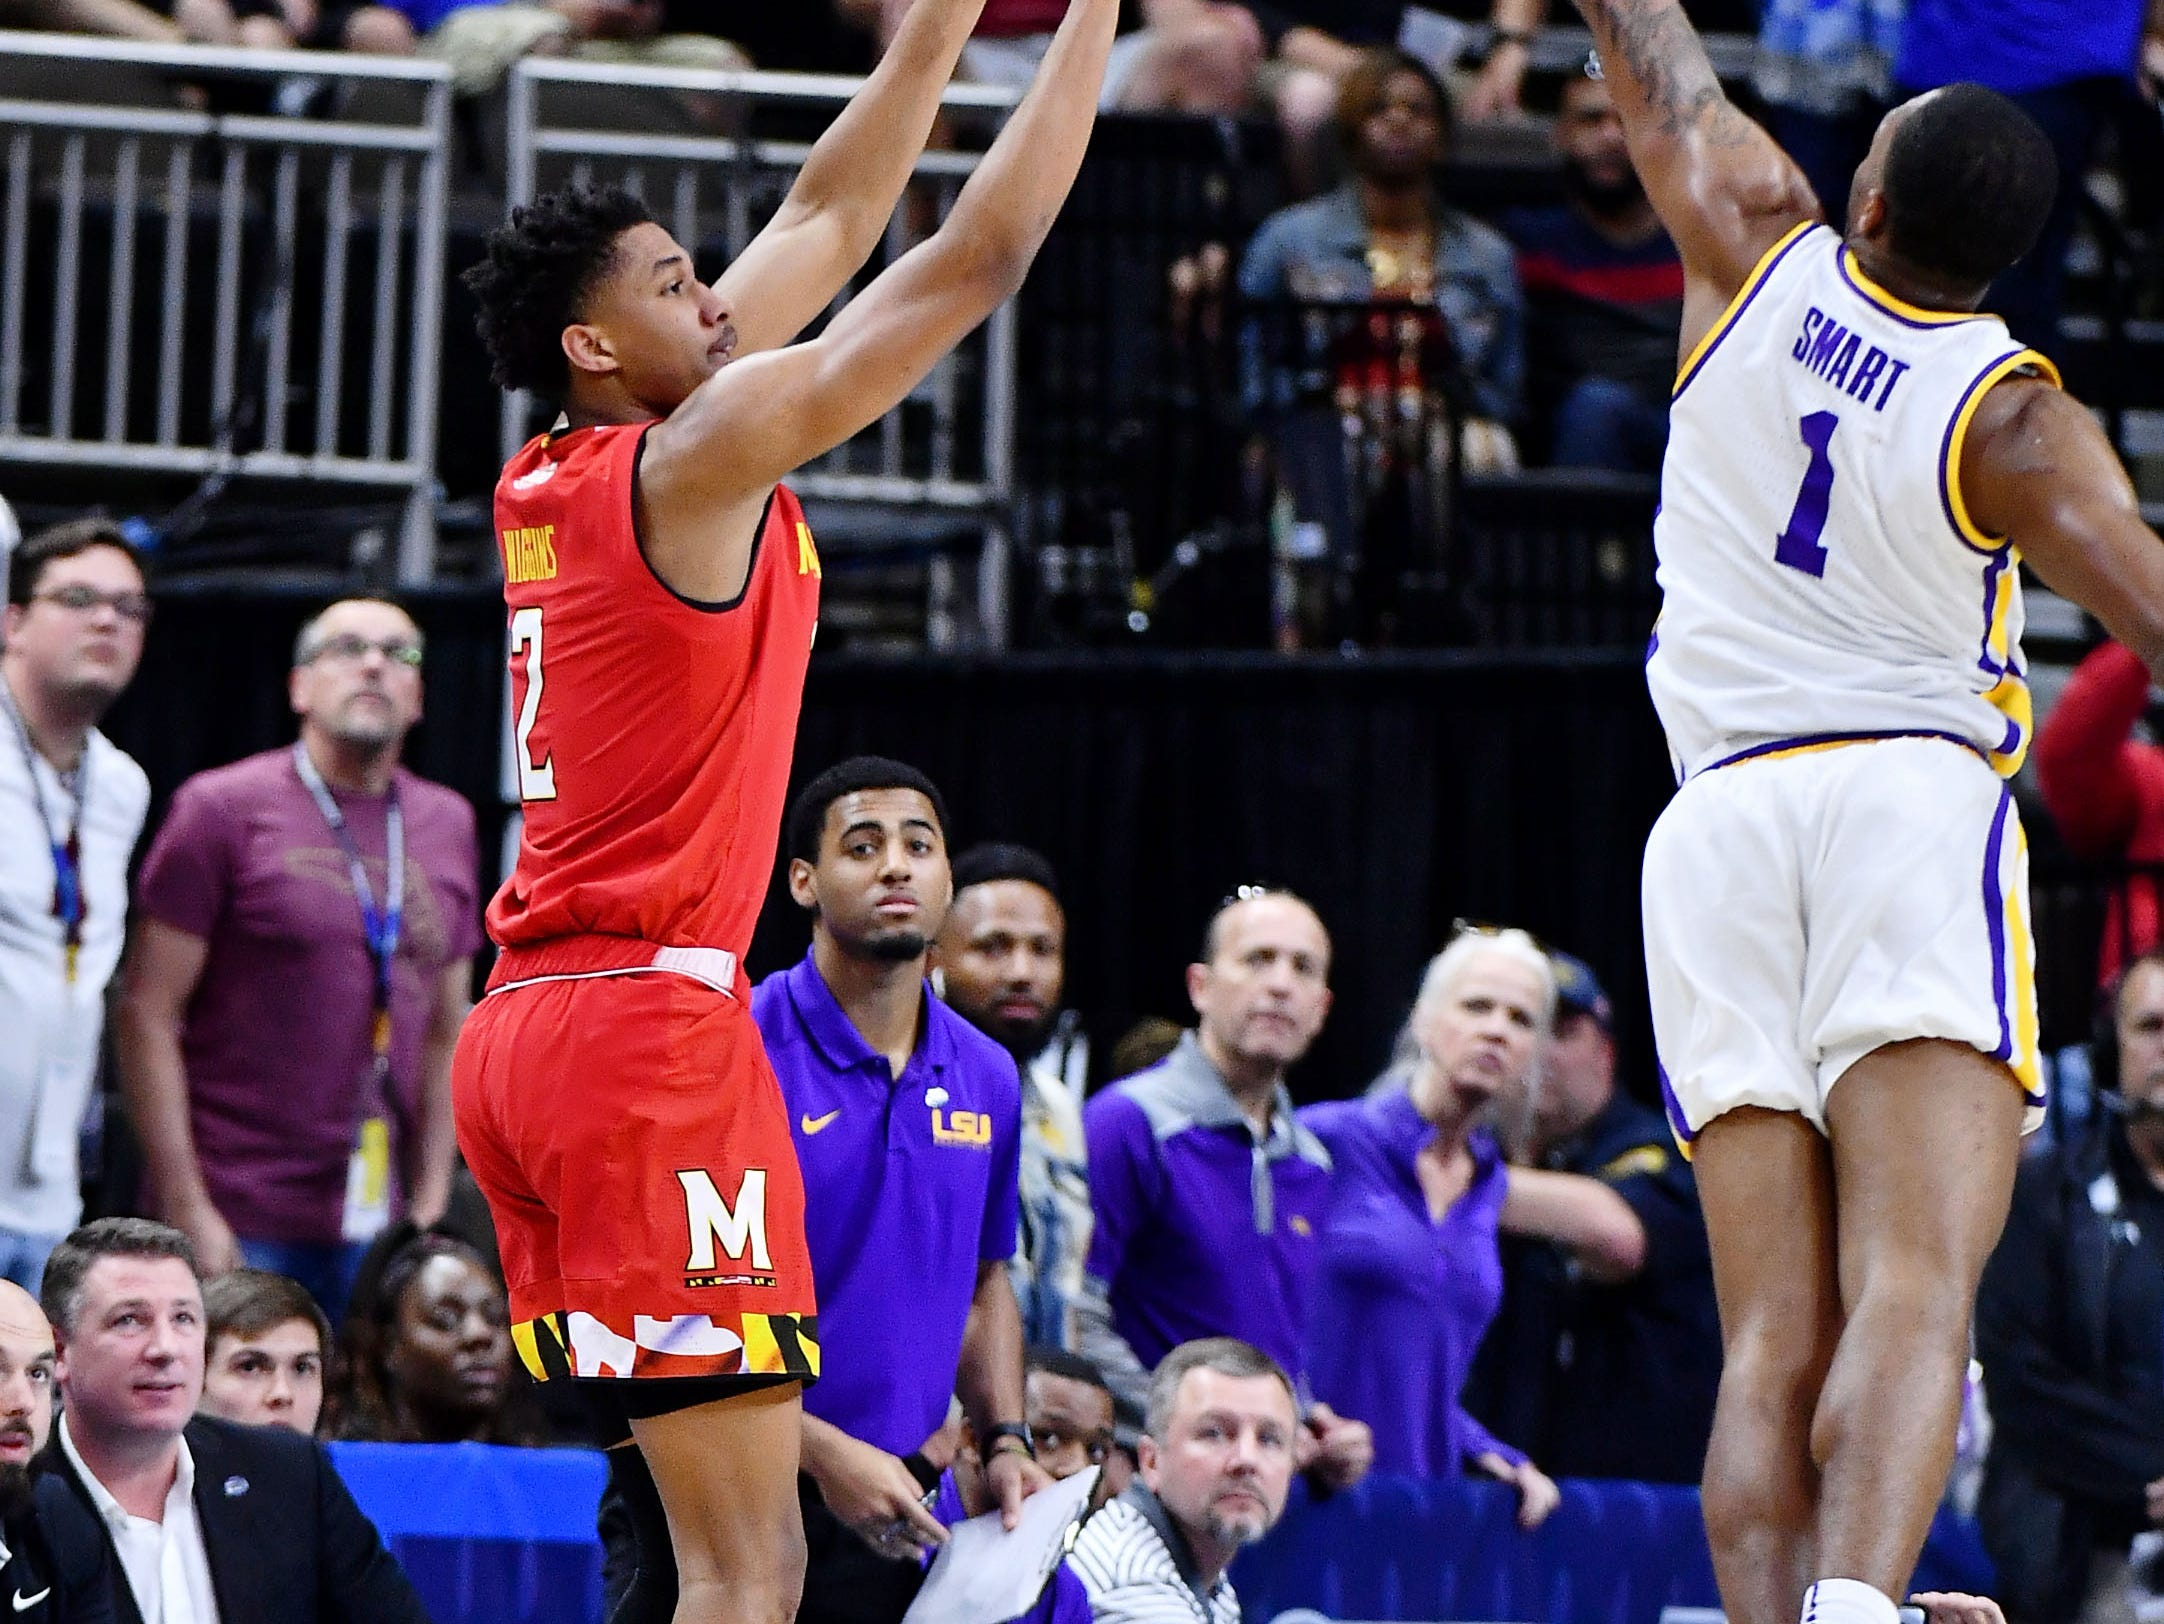 Mar 23, 2019; Jacksonville, FL, USA; Maryland Terrapins guard Aaron Wiggins (2) shoots while LSU Tigers guard Javonte Smart (1) attempts to block during the first half in the second round of the 2019 NCAA Tournament at Jacksonville Veterans Memorial Arena. Mandatory Credit: John David Mercer-USA TODAY Sports